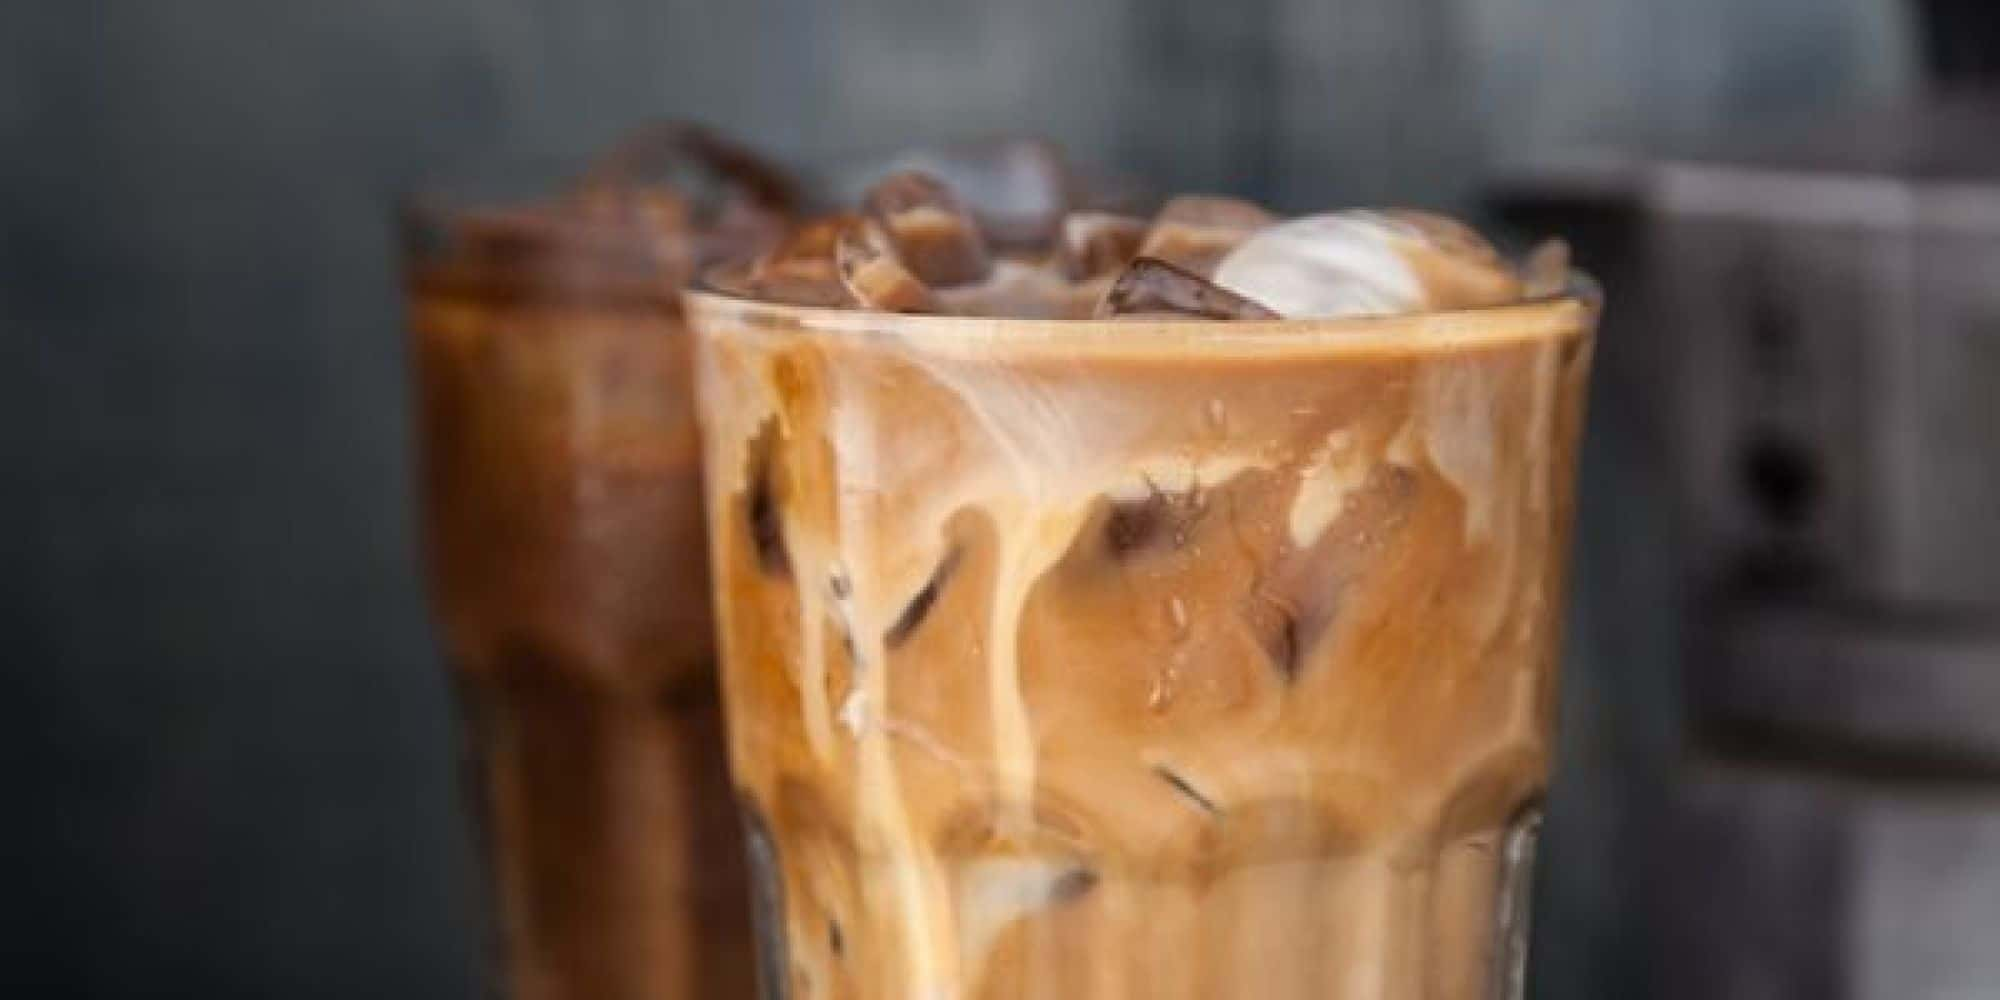 How to Prepare Healthy and Delicious Iced Coffee